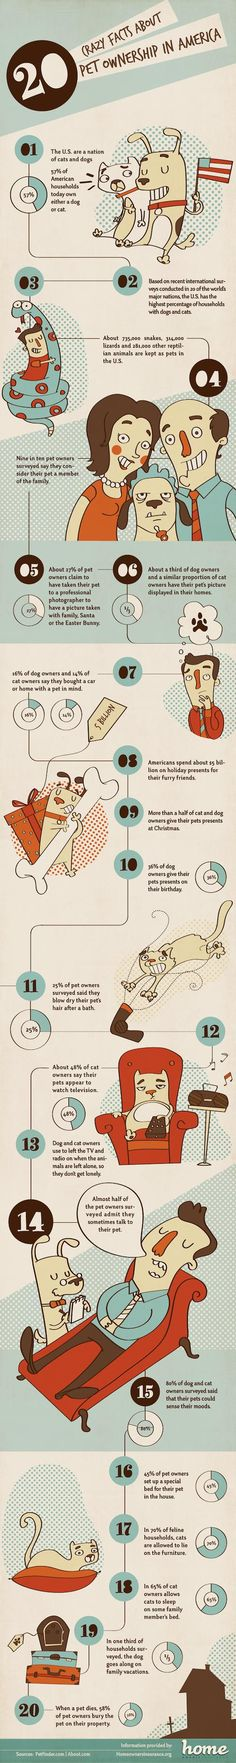 pet owner infographic 20 Facts About Pet Owners (Infographic) #pet owners